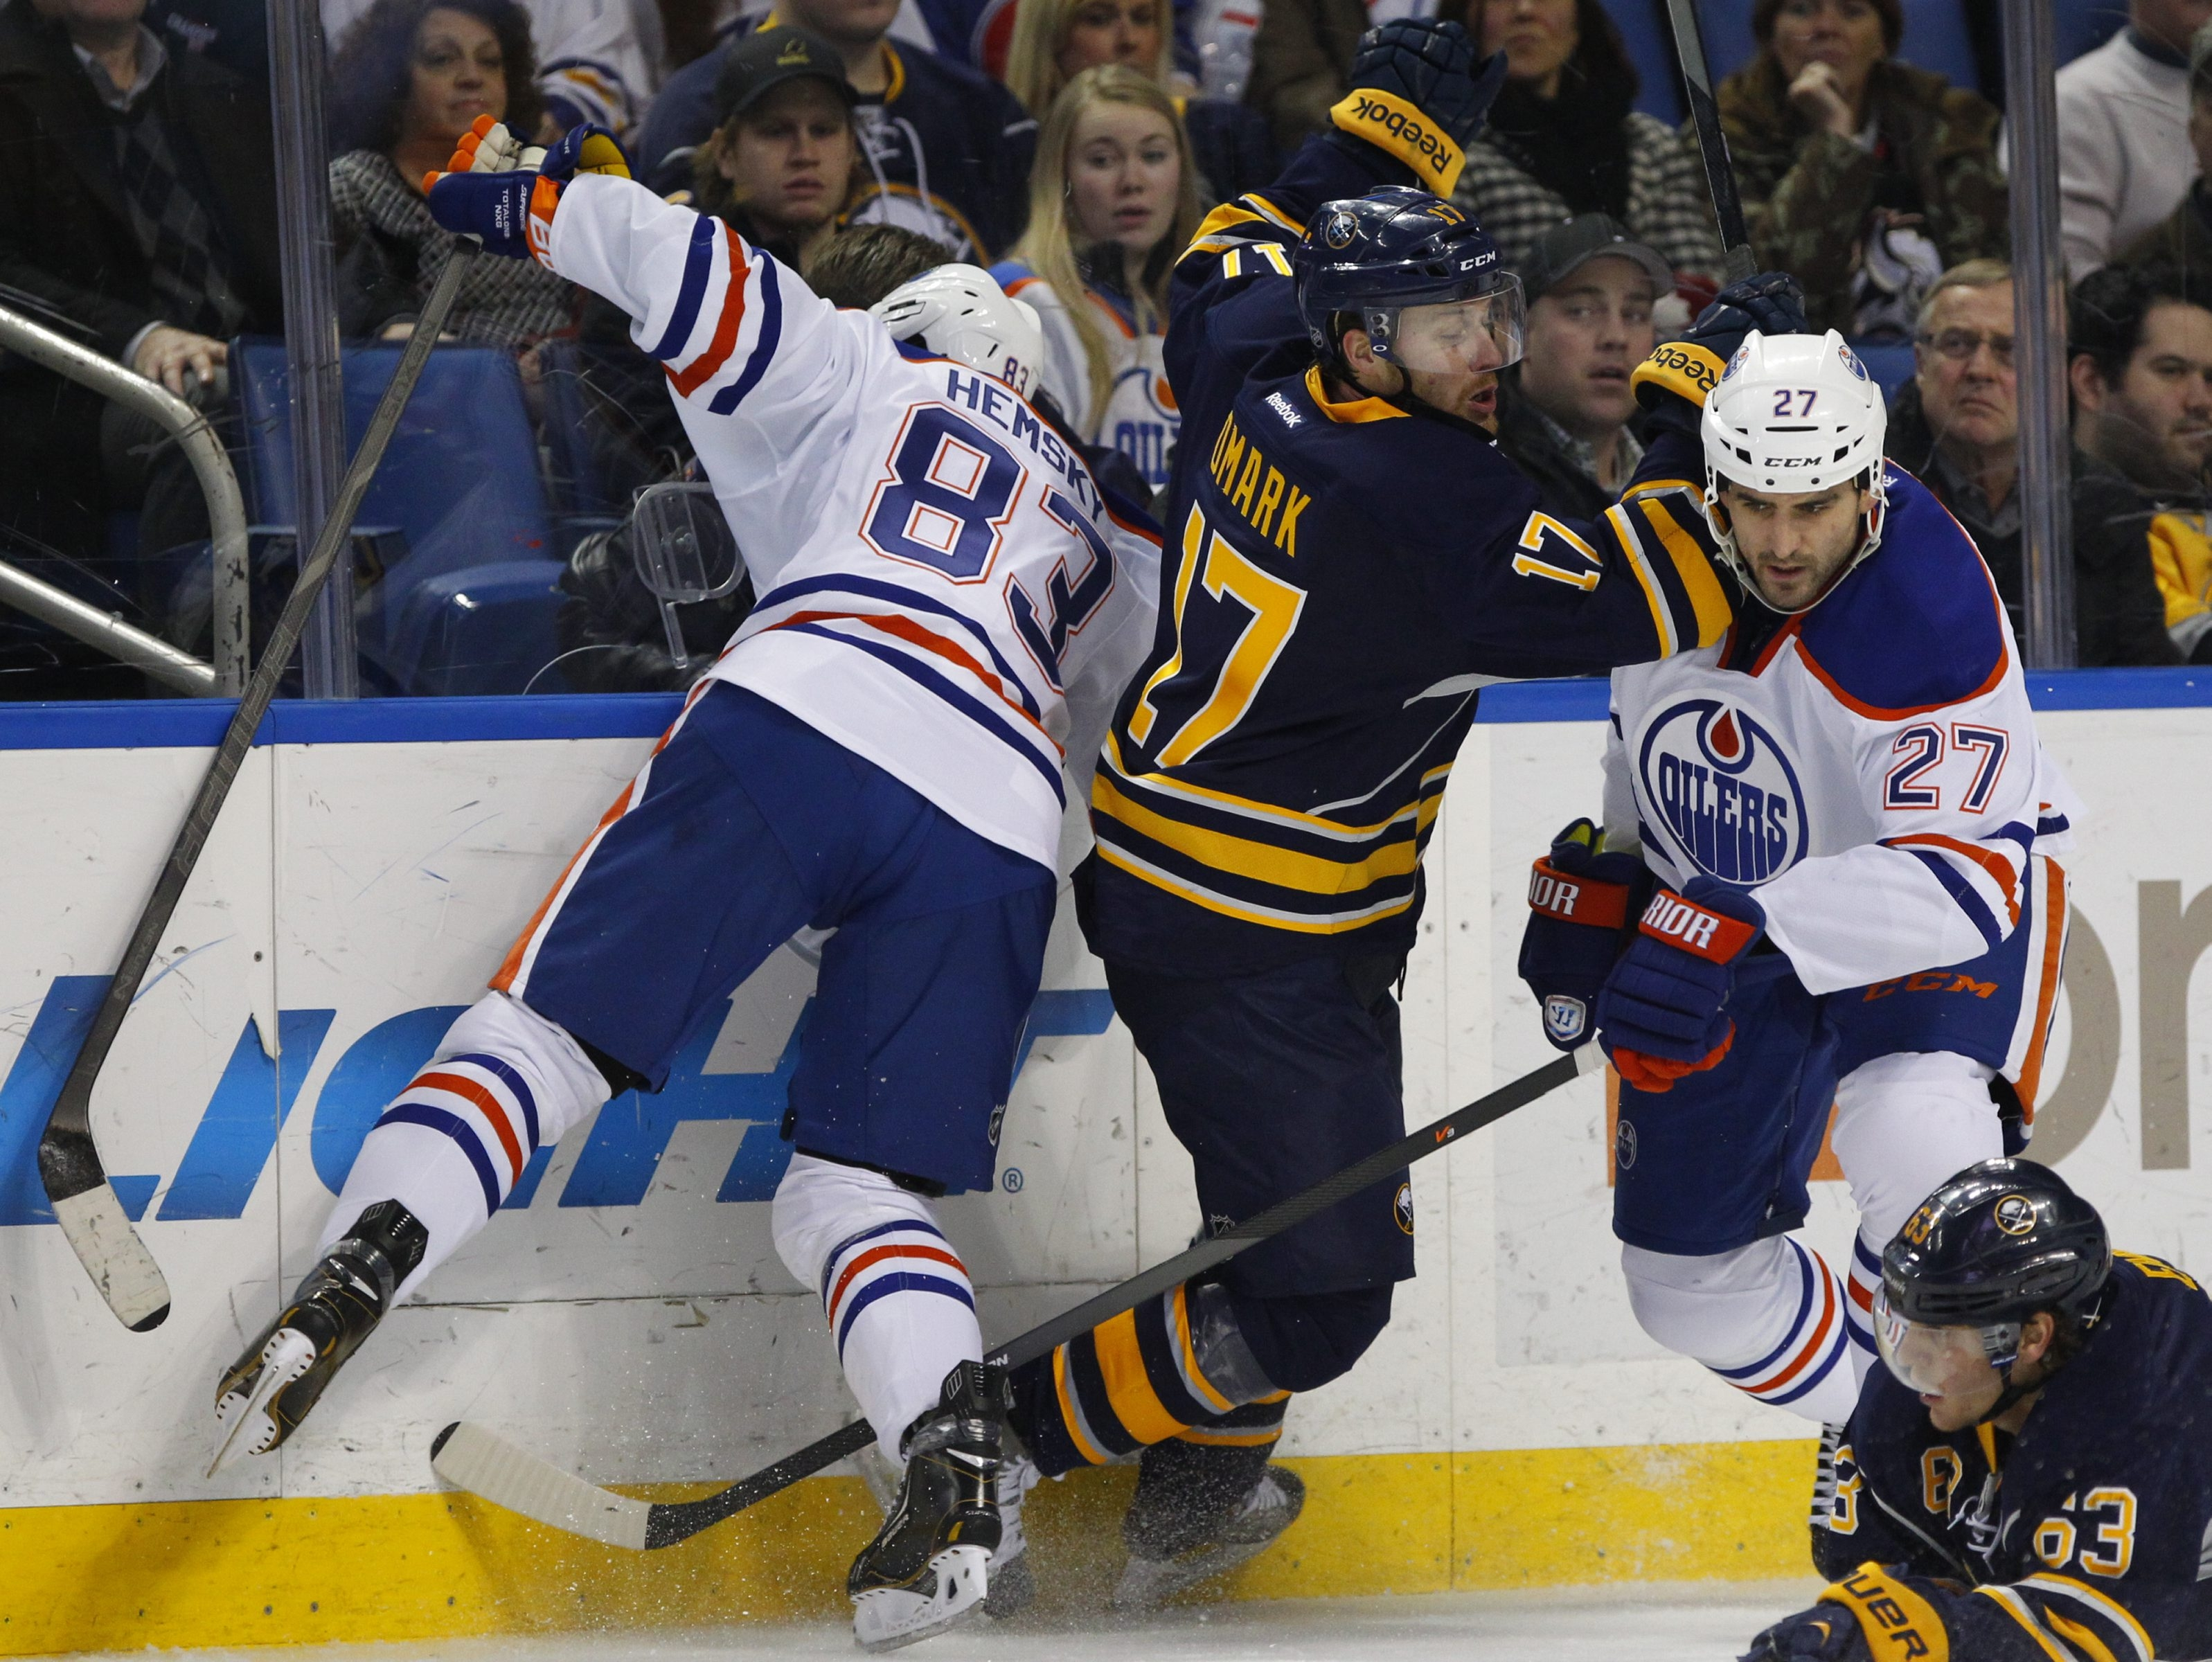 The Sabres' Linus Omark(17) faced his former team in the Edmonton Oilers on Monday night.